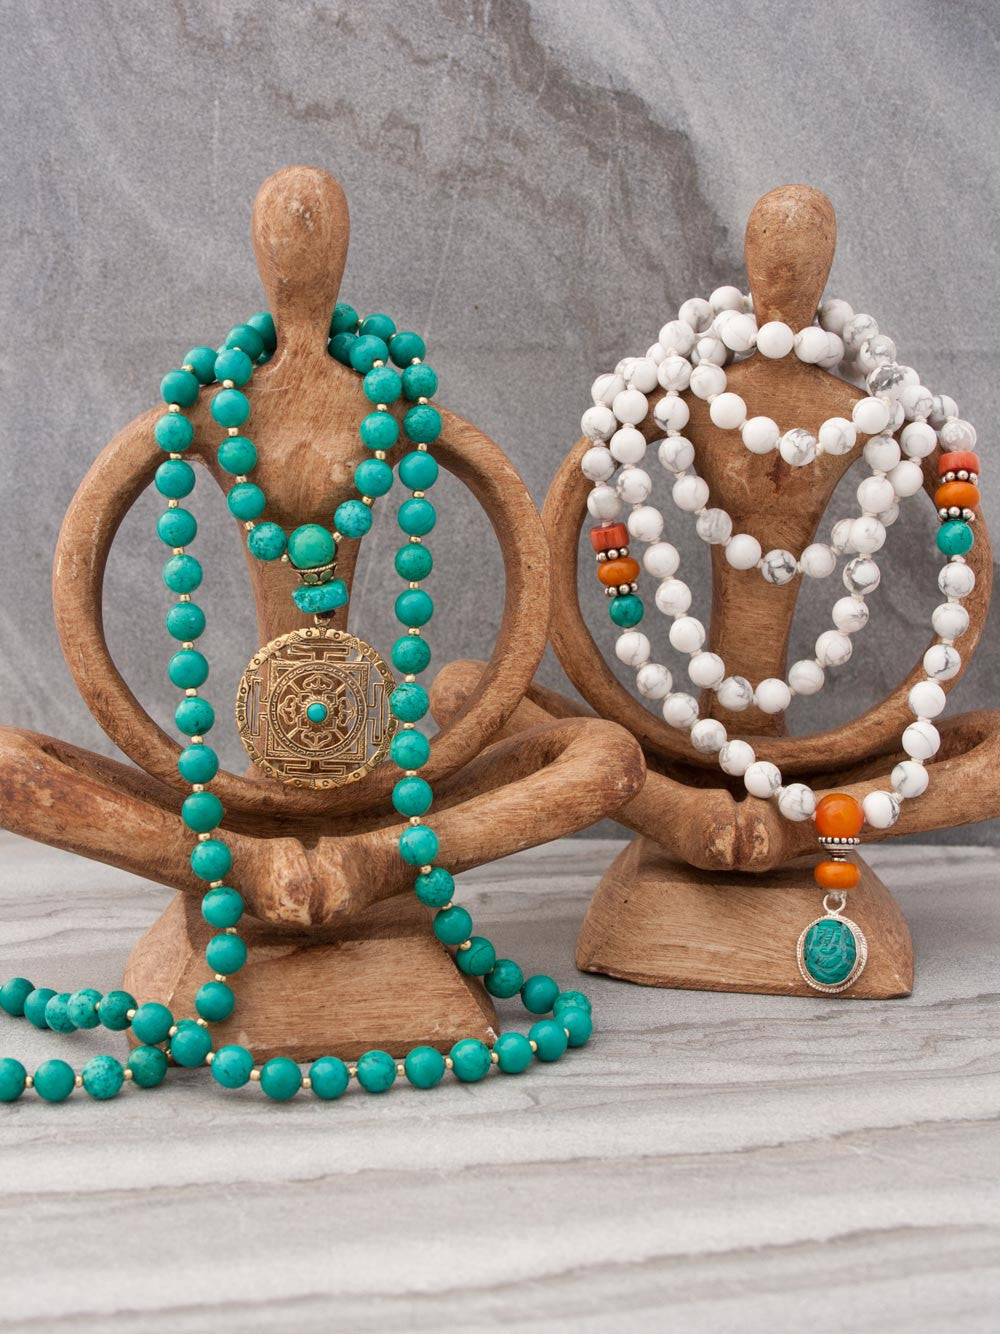 Infinity Celebration Mala in distinctive turquoise, shown with Victory Ganesh Mala in alabaster howlite with turquoise accents